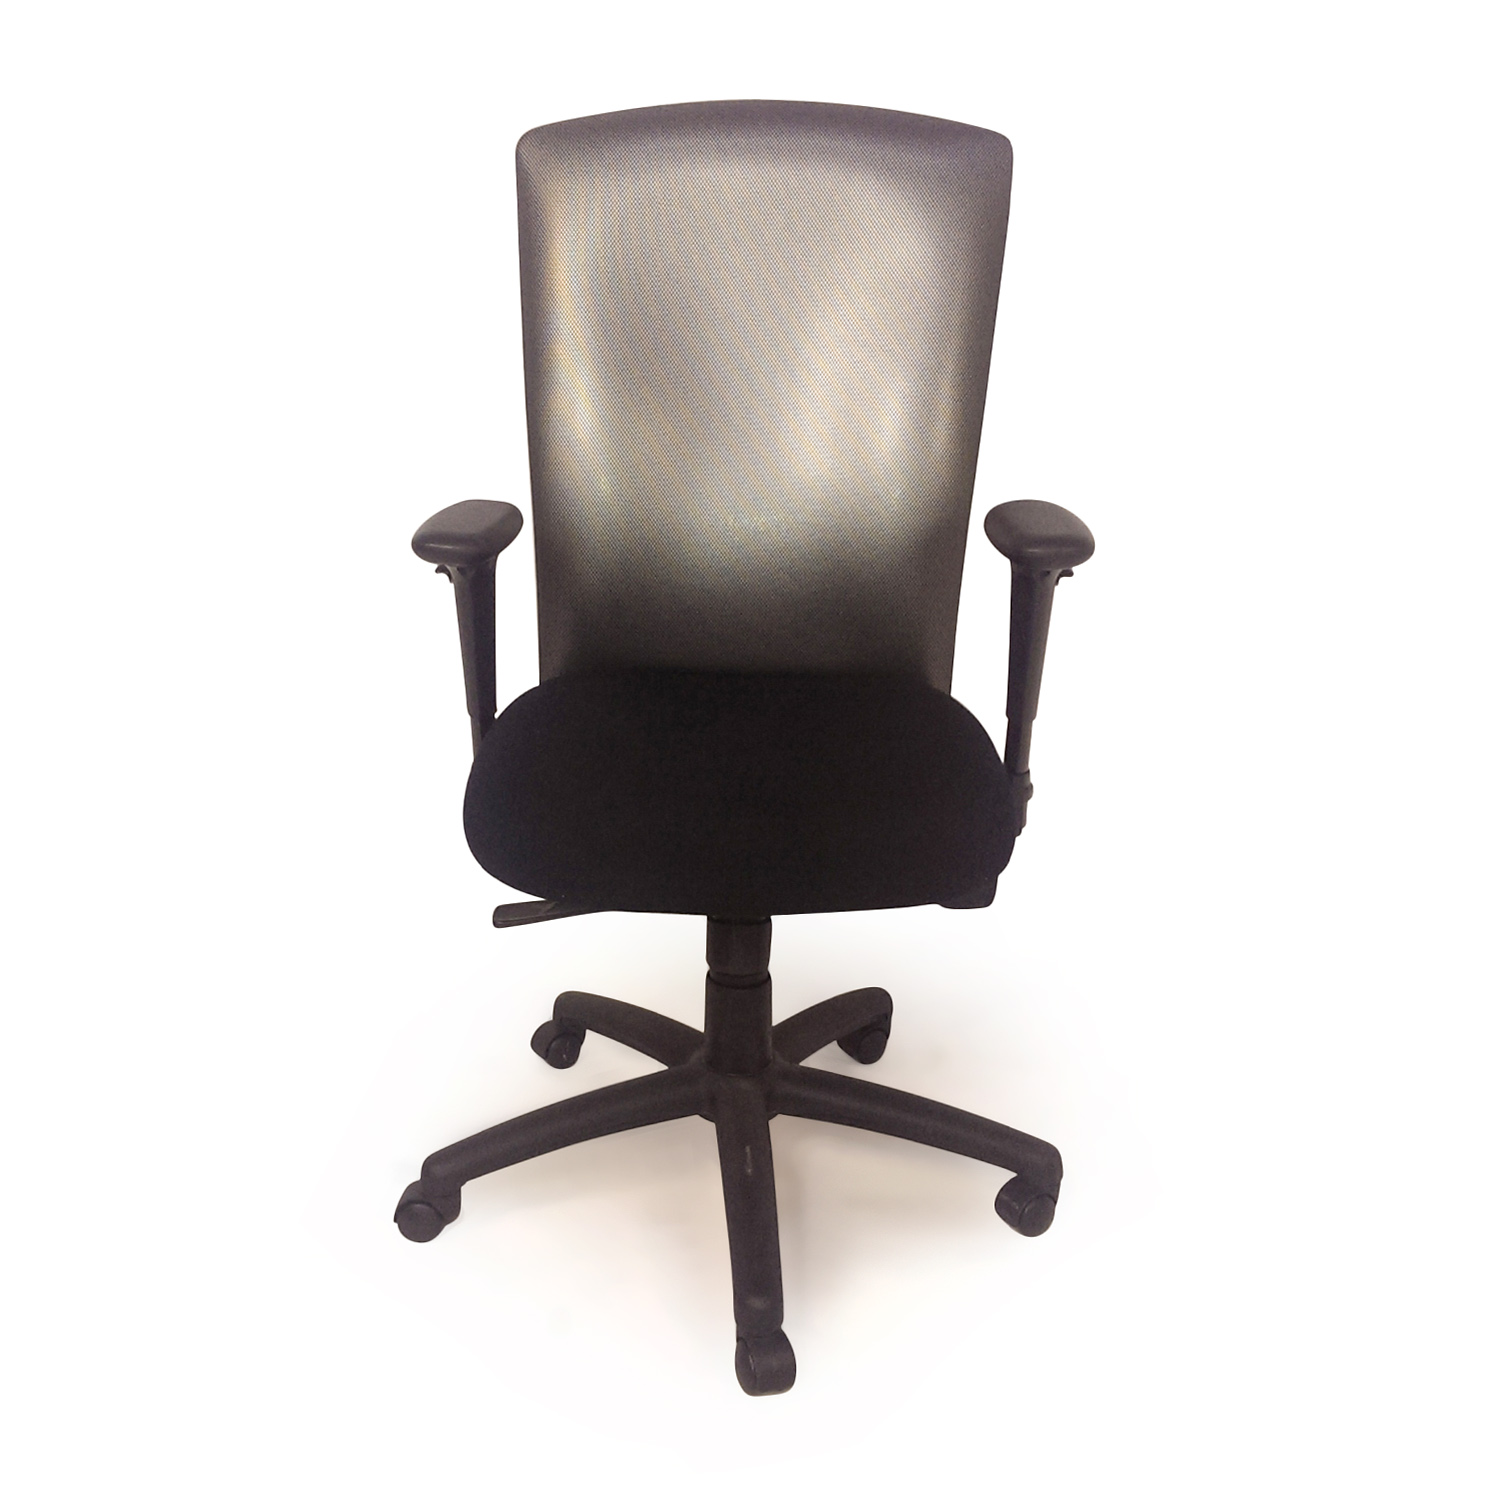 office chair on sale kids chairs walmart luxury for rtty1